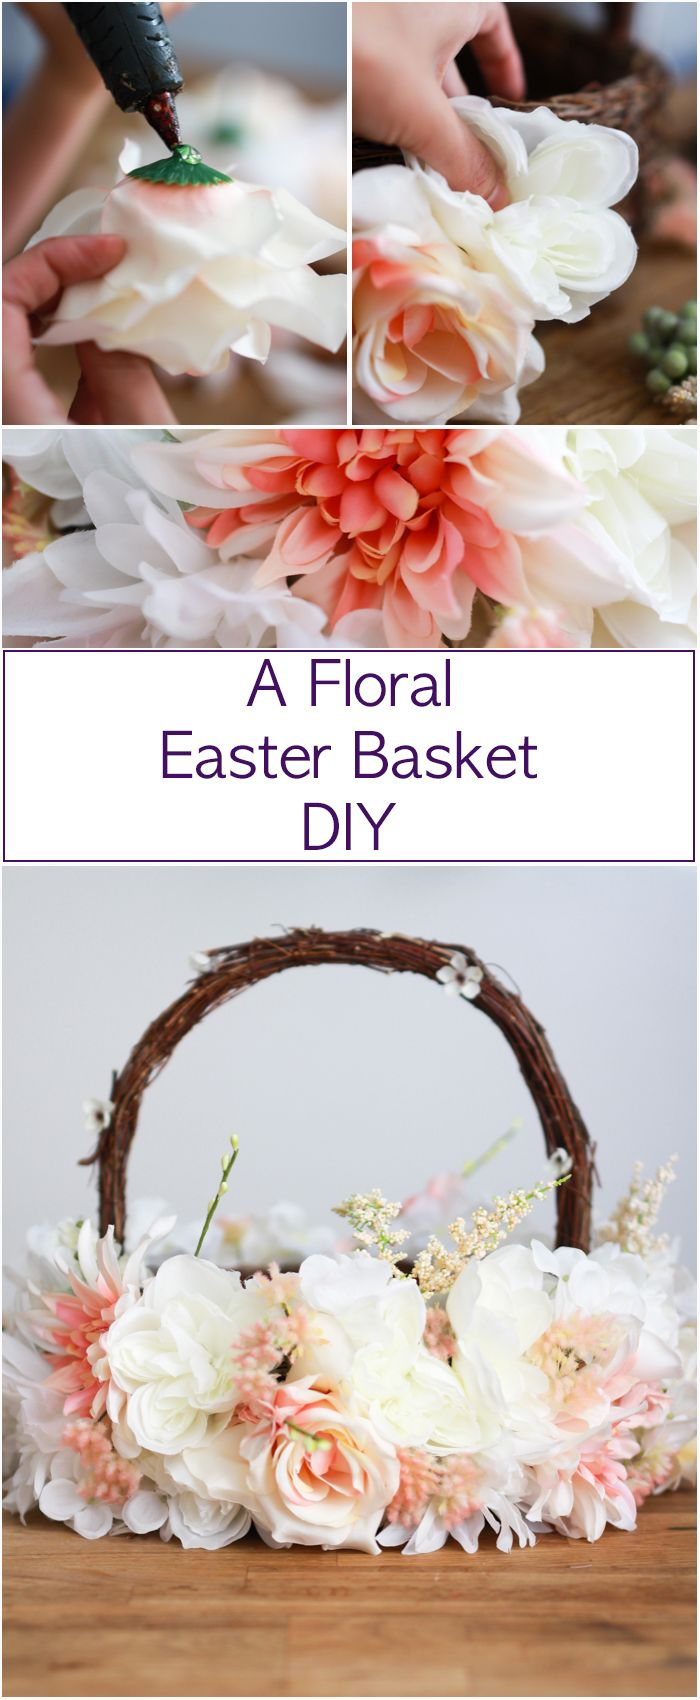 How to make a beautiful Easter basket for a Easter or for a flower girl/boy. Take a look.